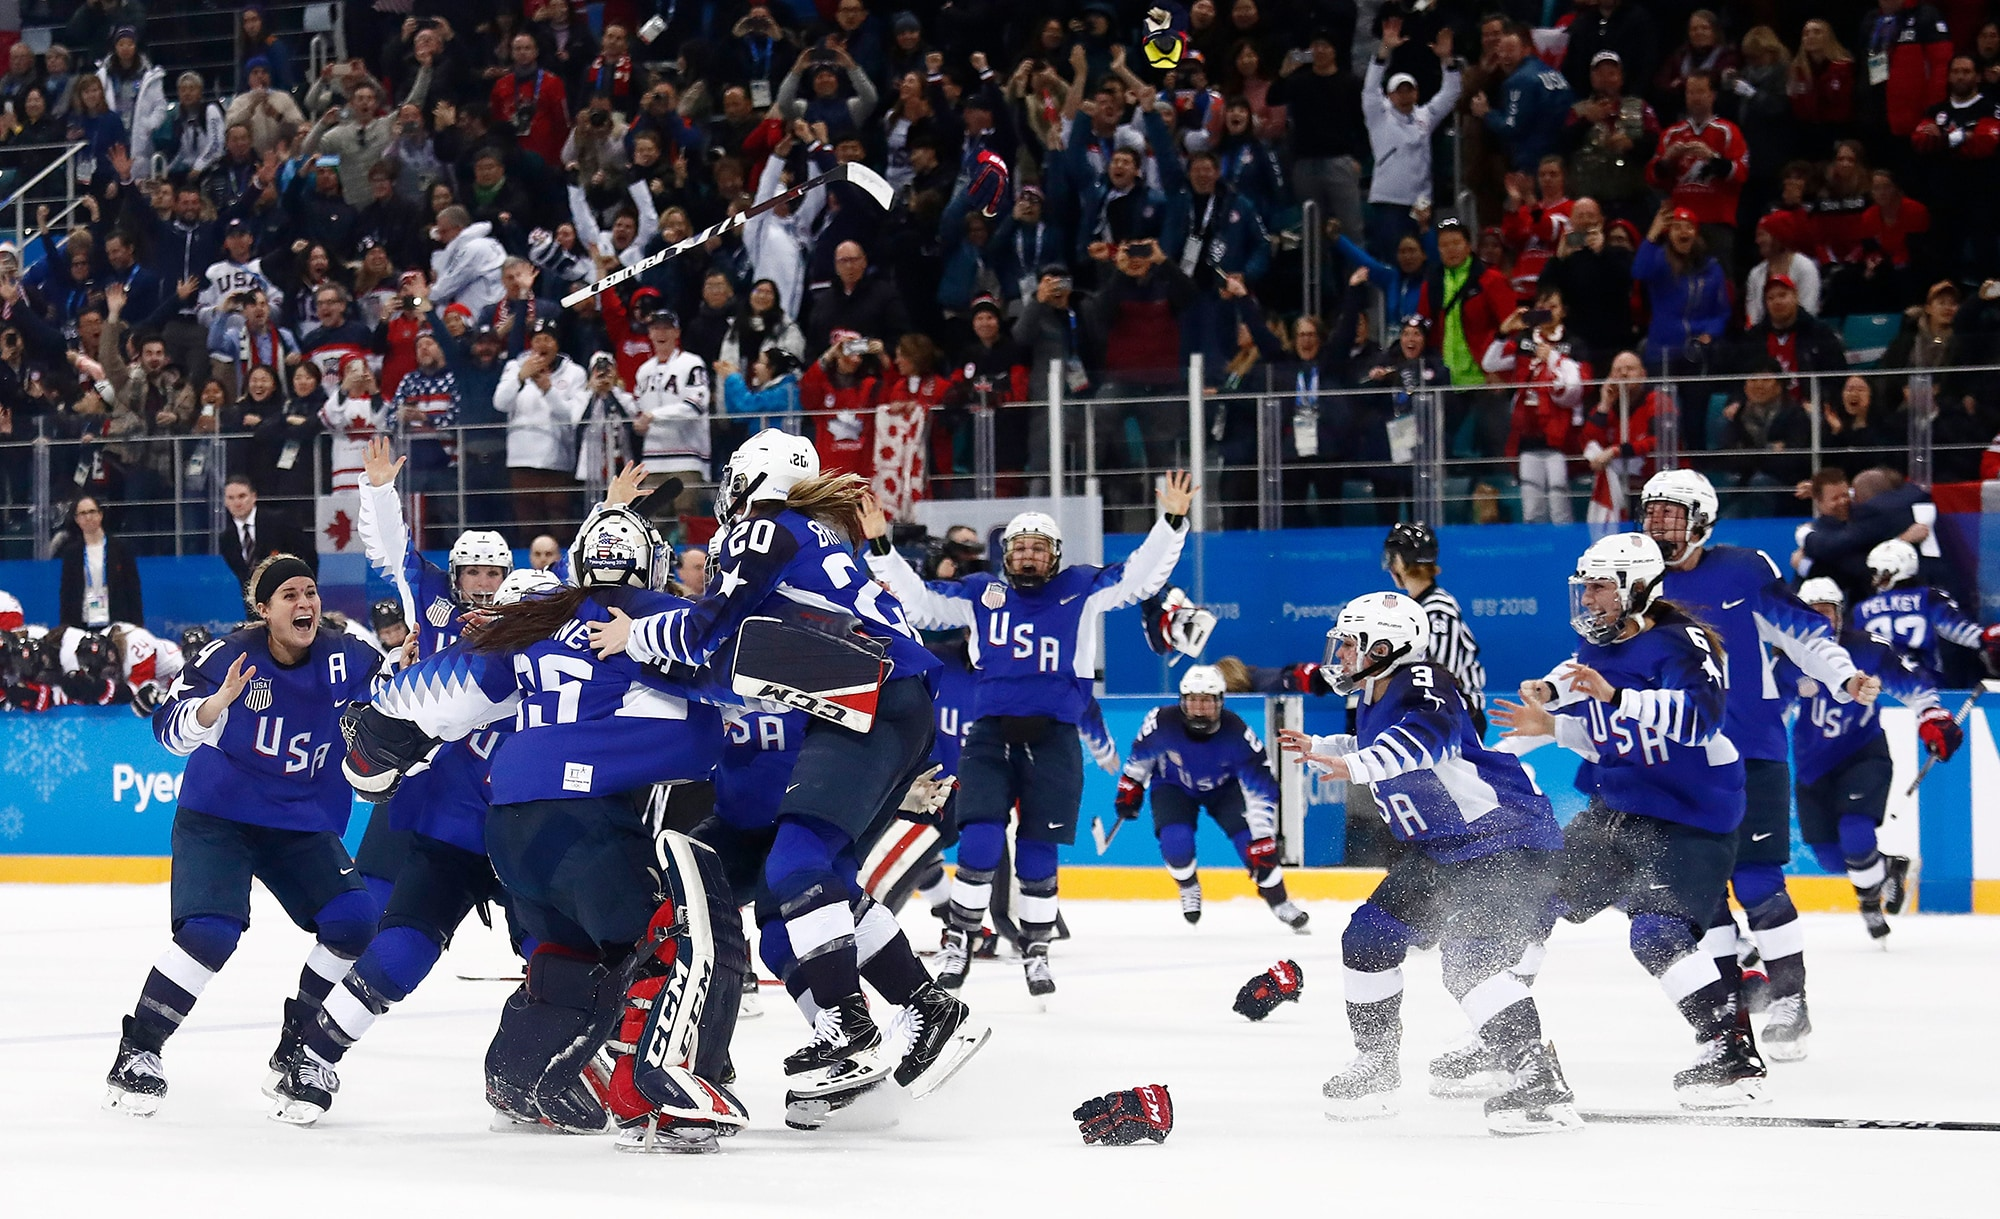 Olympics Day 14 After 20 Years U S Women S Hockey Wins Gold